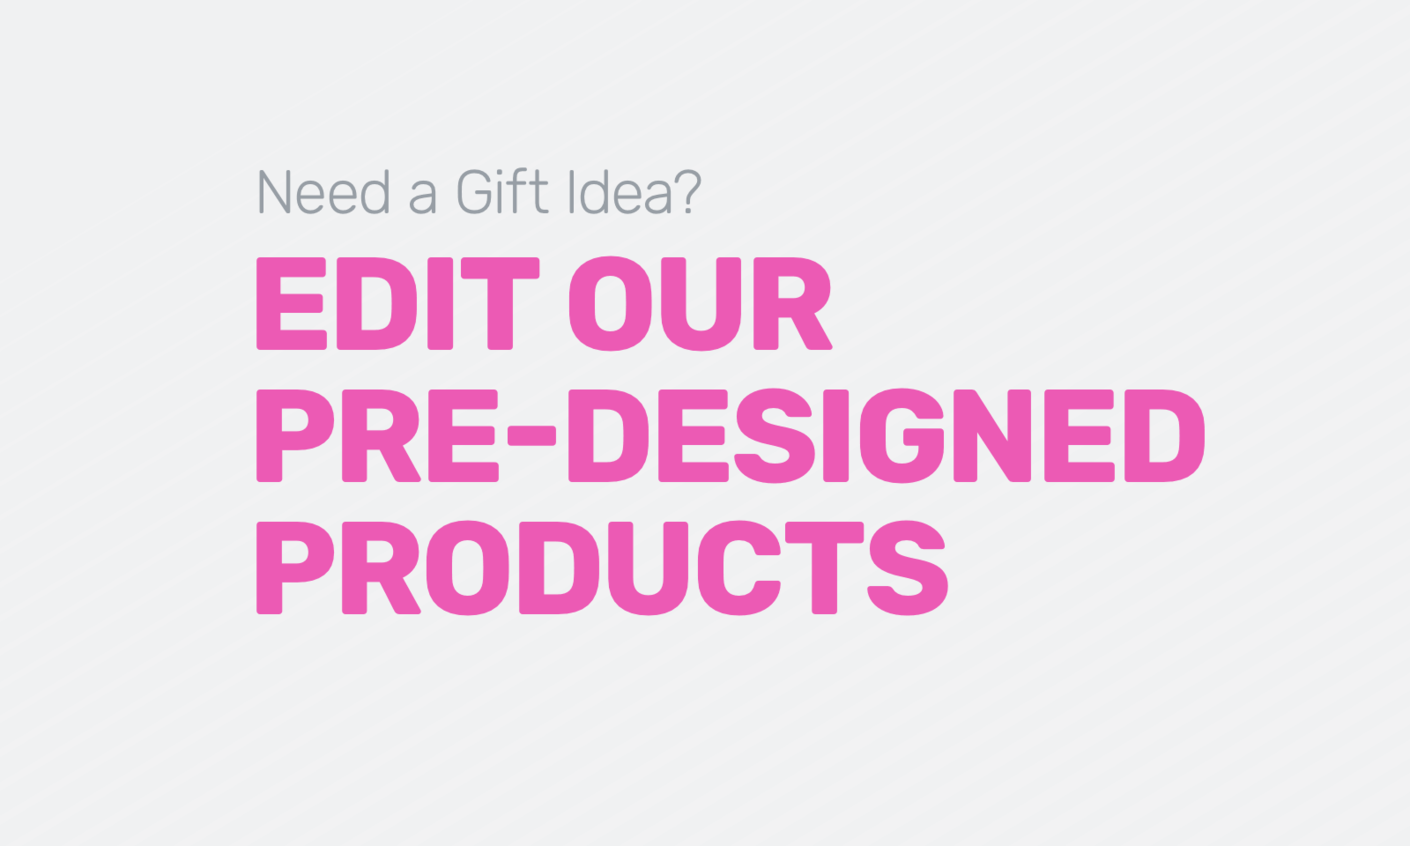 Edit our pre-designed products